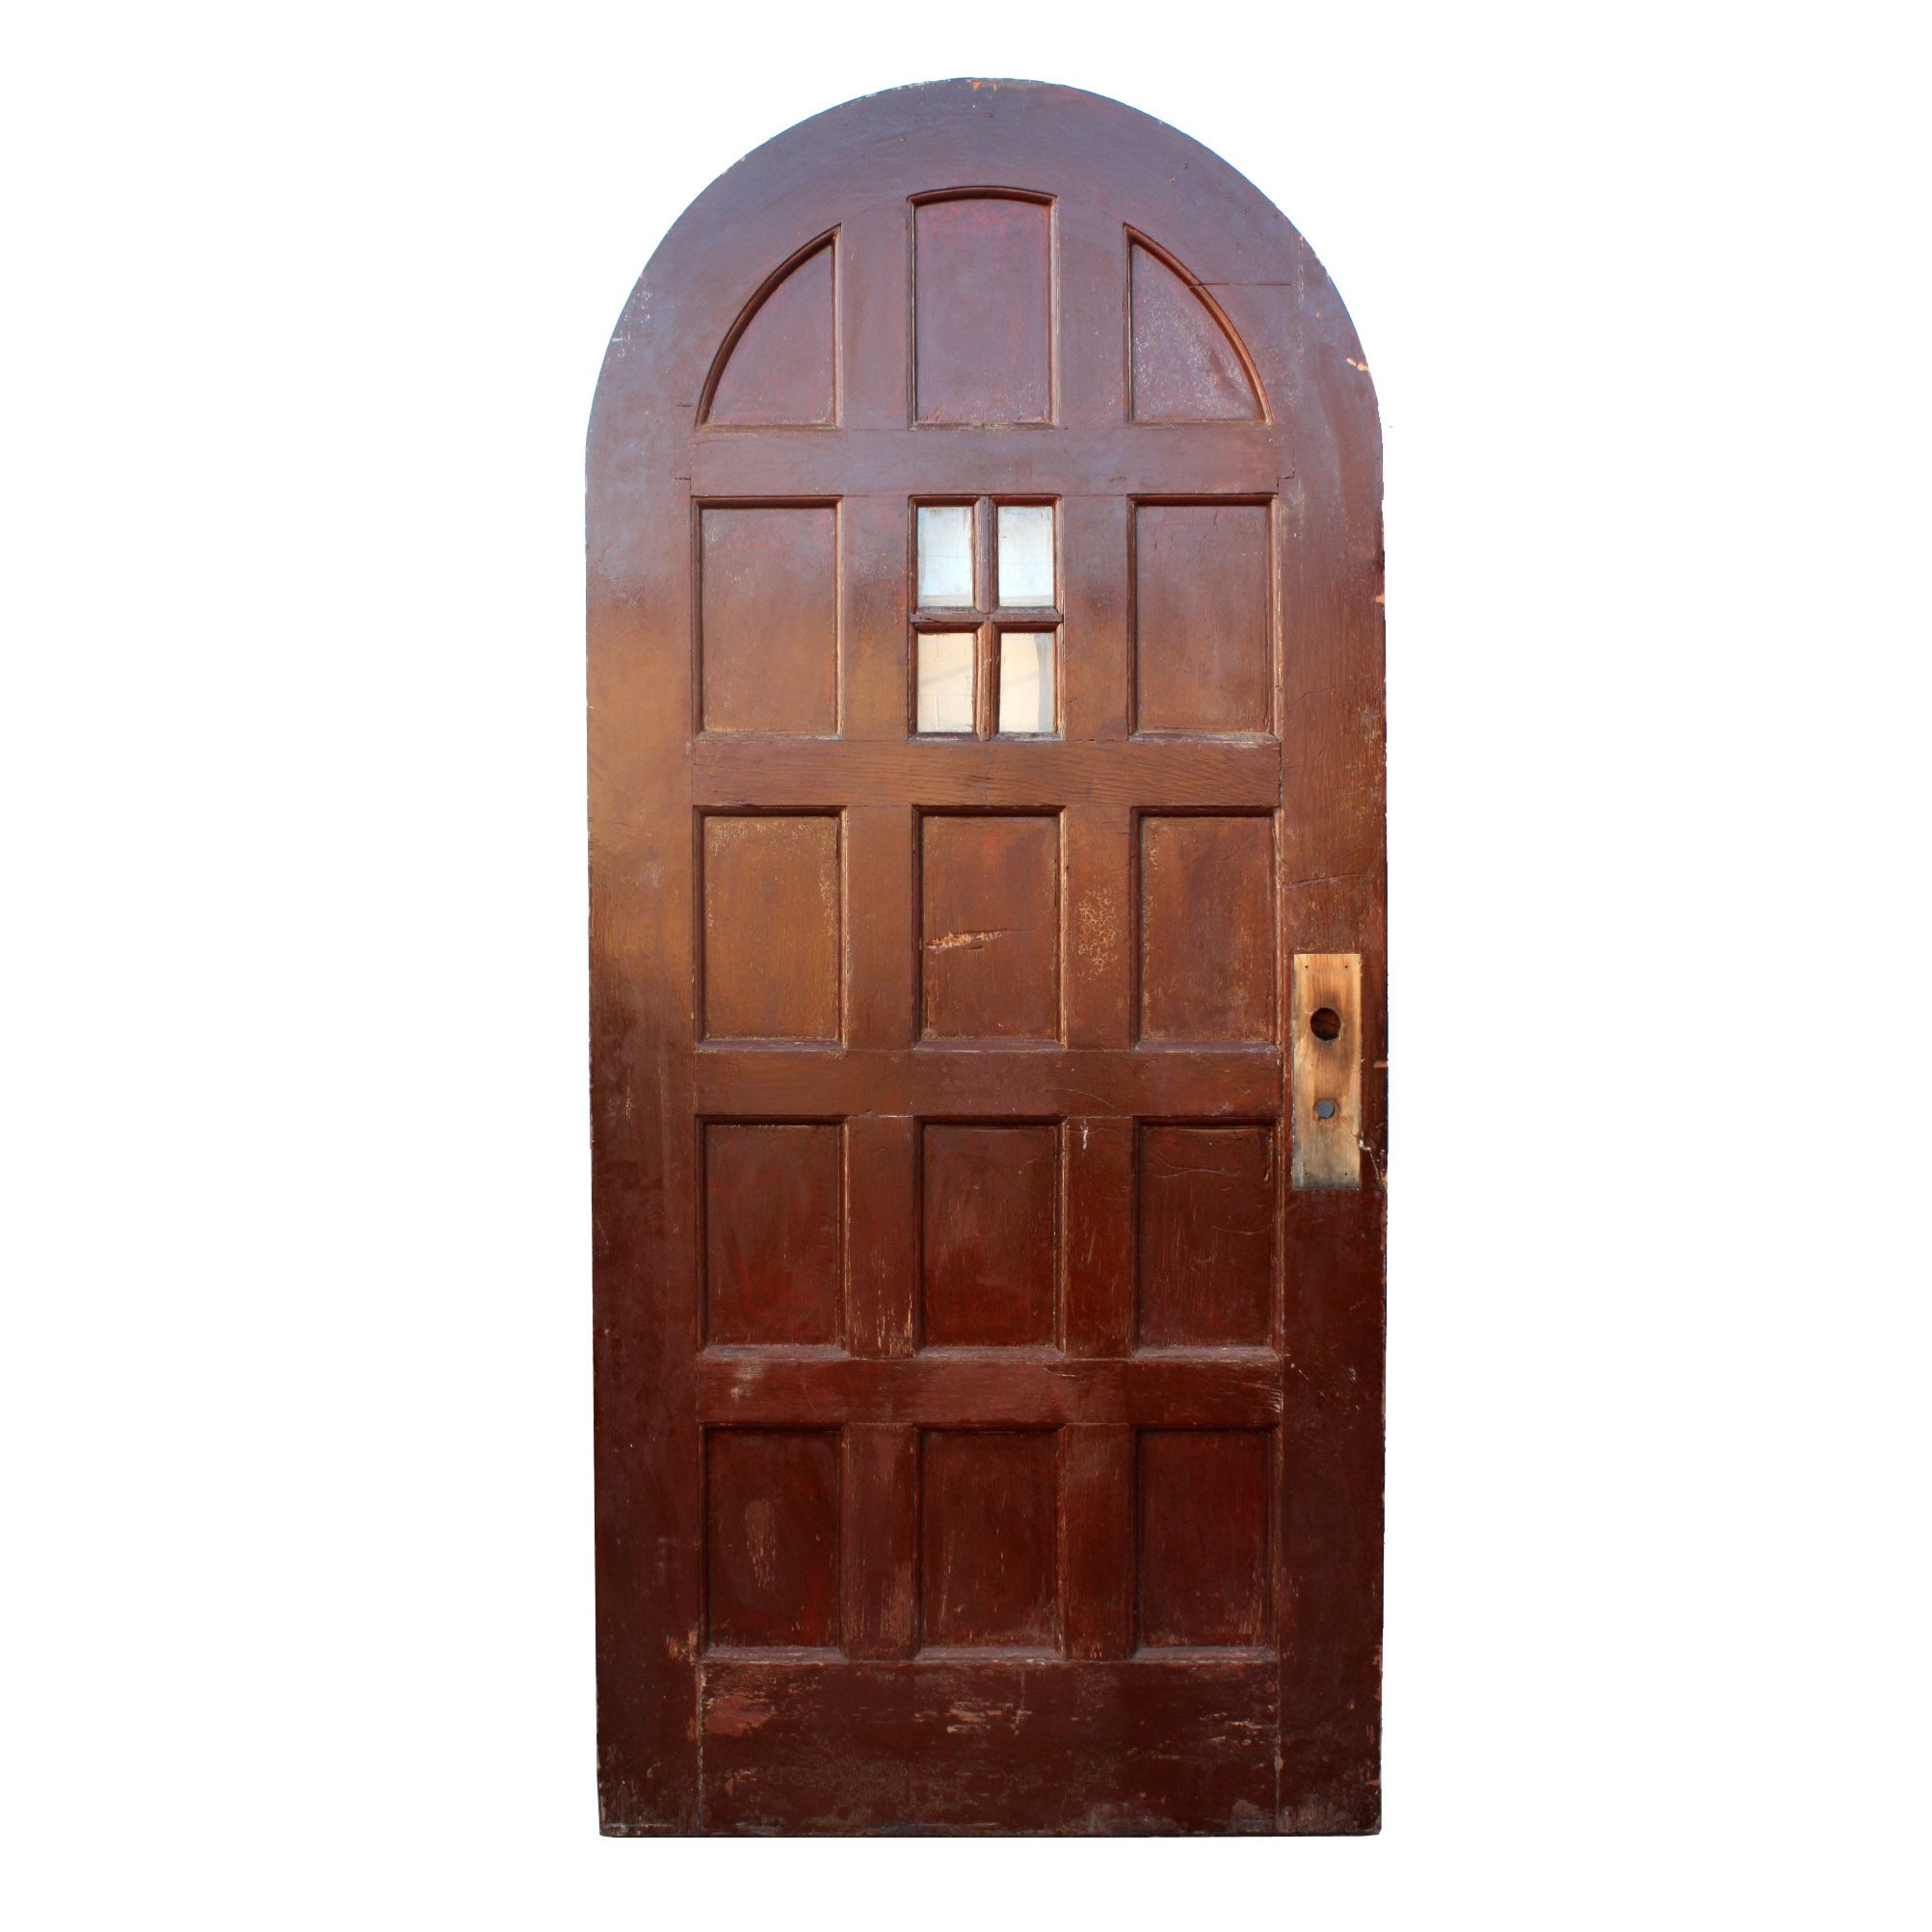 2005 #45170D Arched Door With Panels And A Small Divided Light Window. The Exterior  save image Arch Doors Exterior 39772005